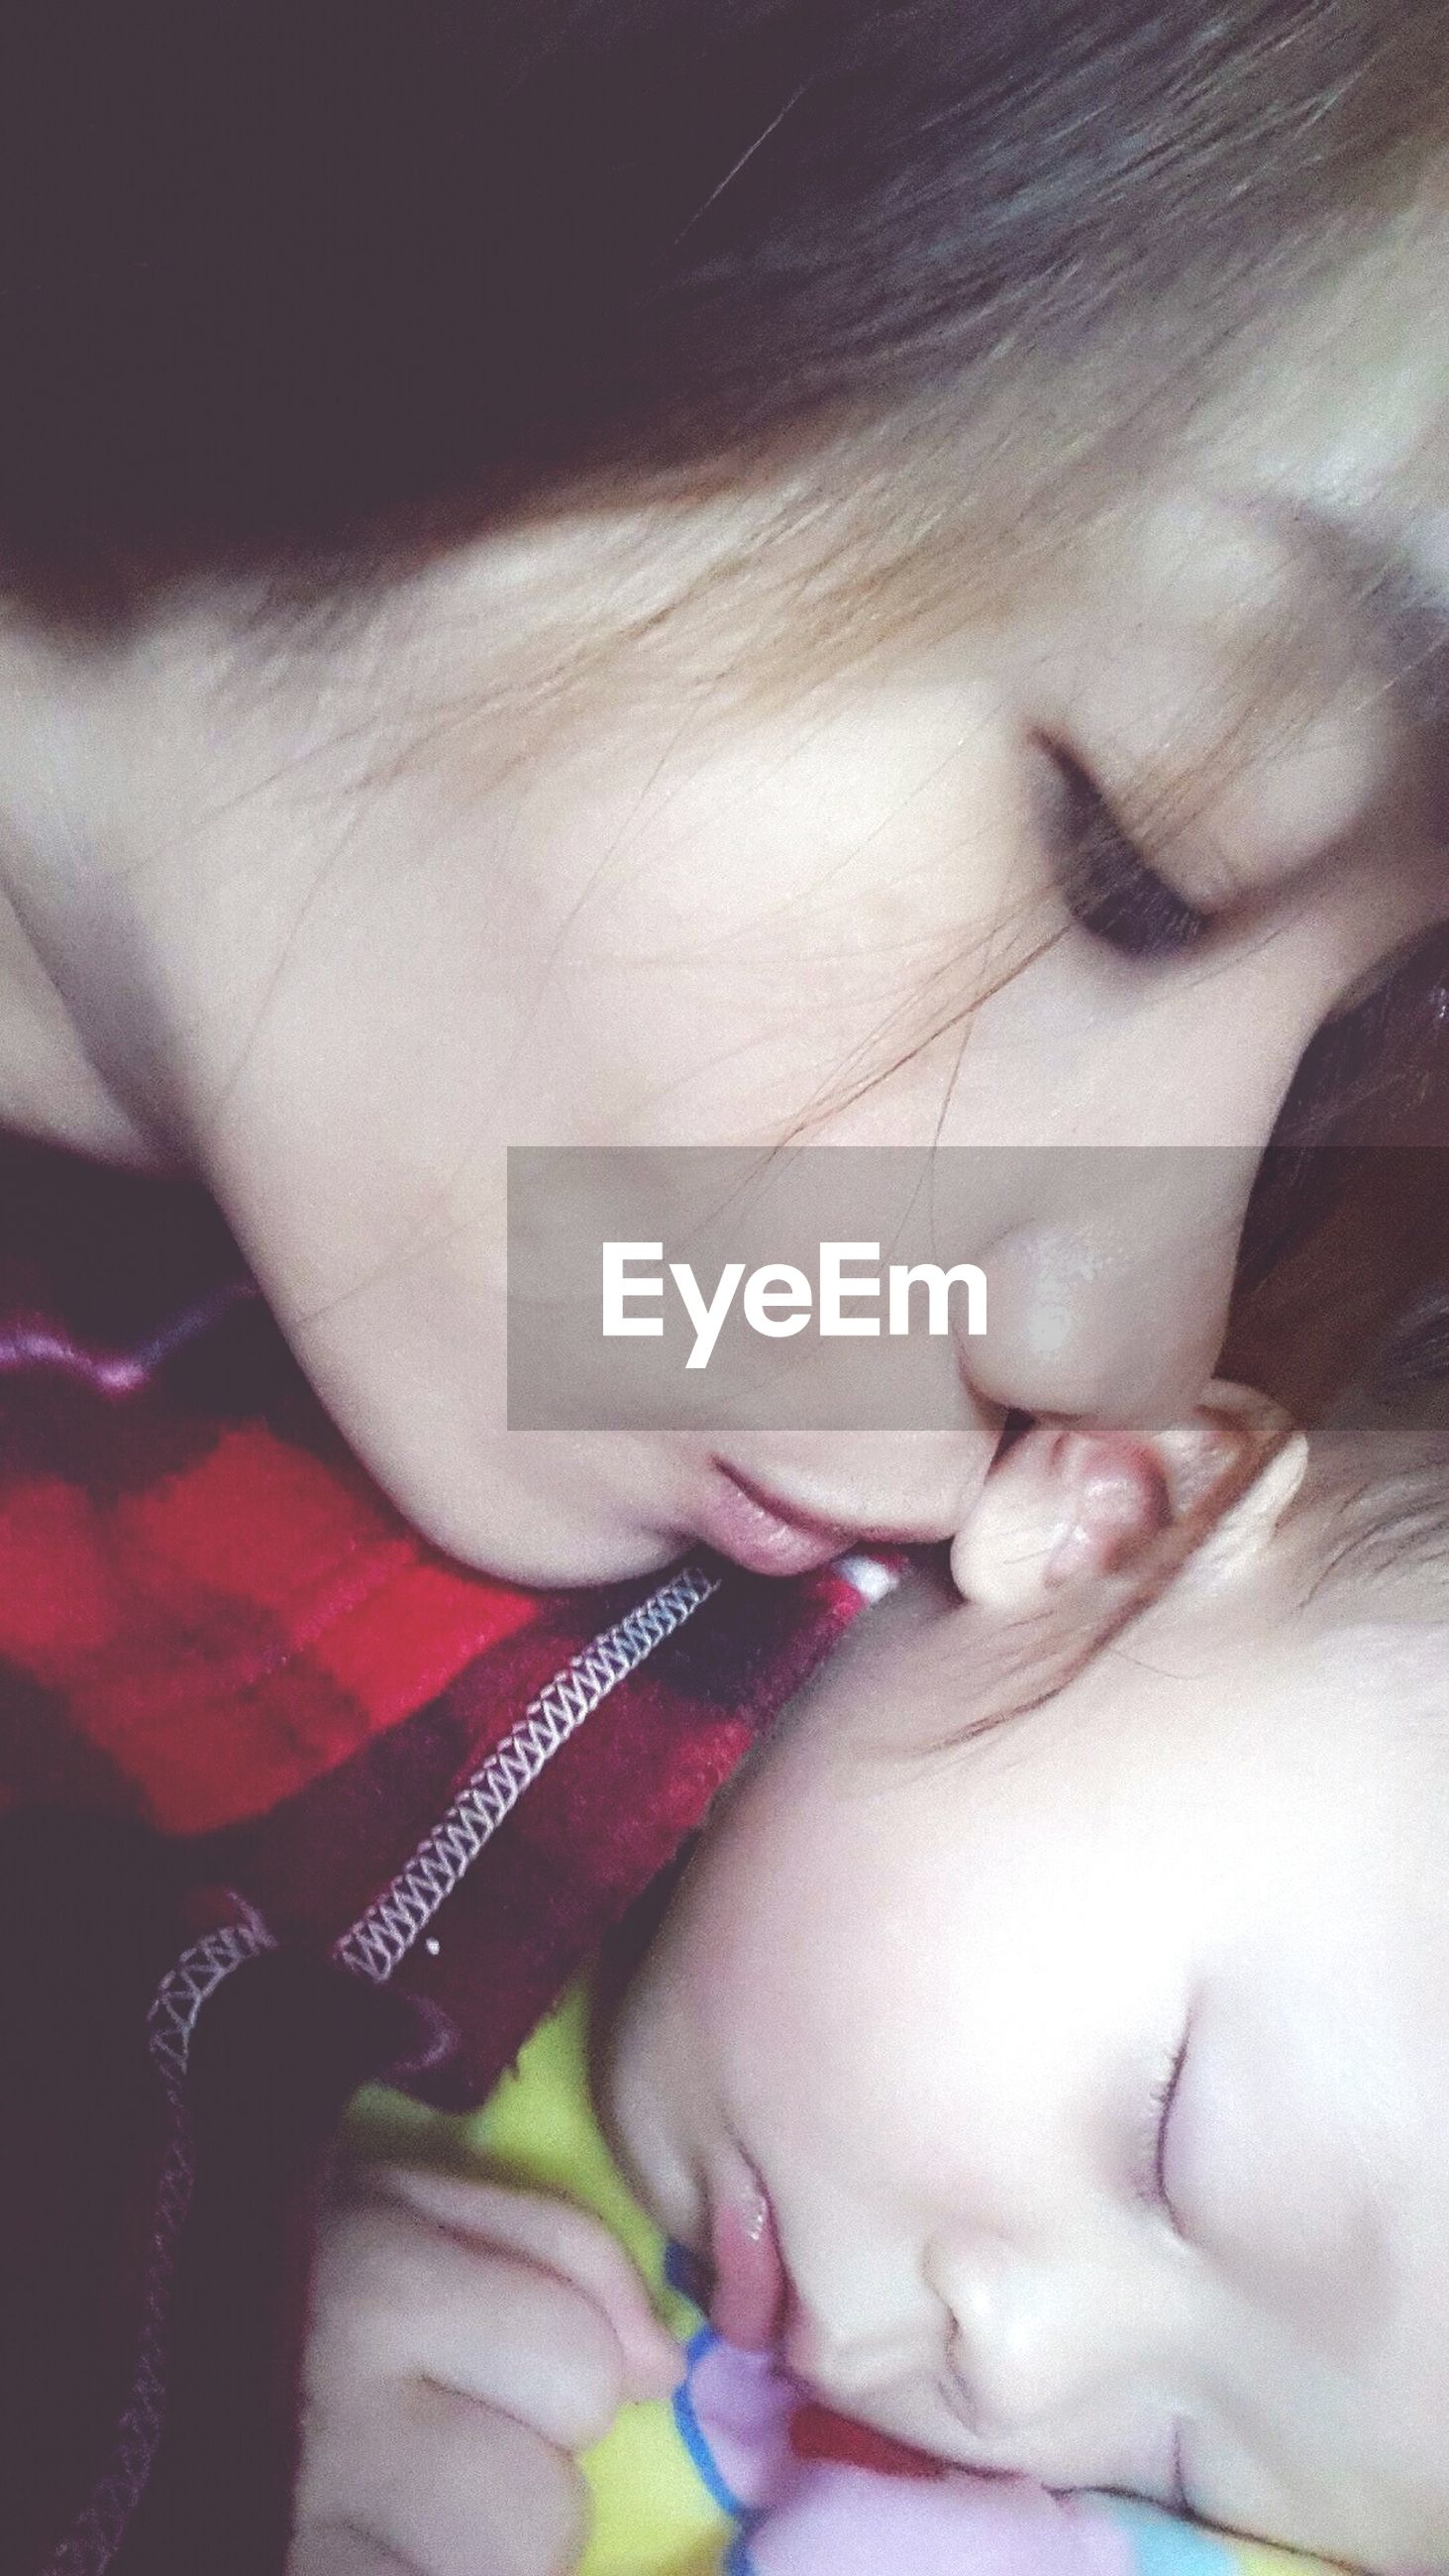 childhood, innocence, baby, babyhood, lifestyles, indoors, person, bonding, love, family with one child, togetherness, sleeping, headshot, leisure activity, cute, eyes closed, toddler